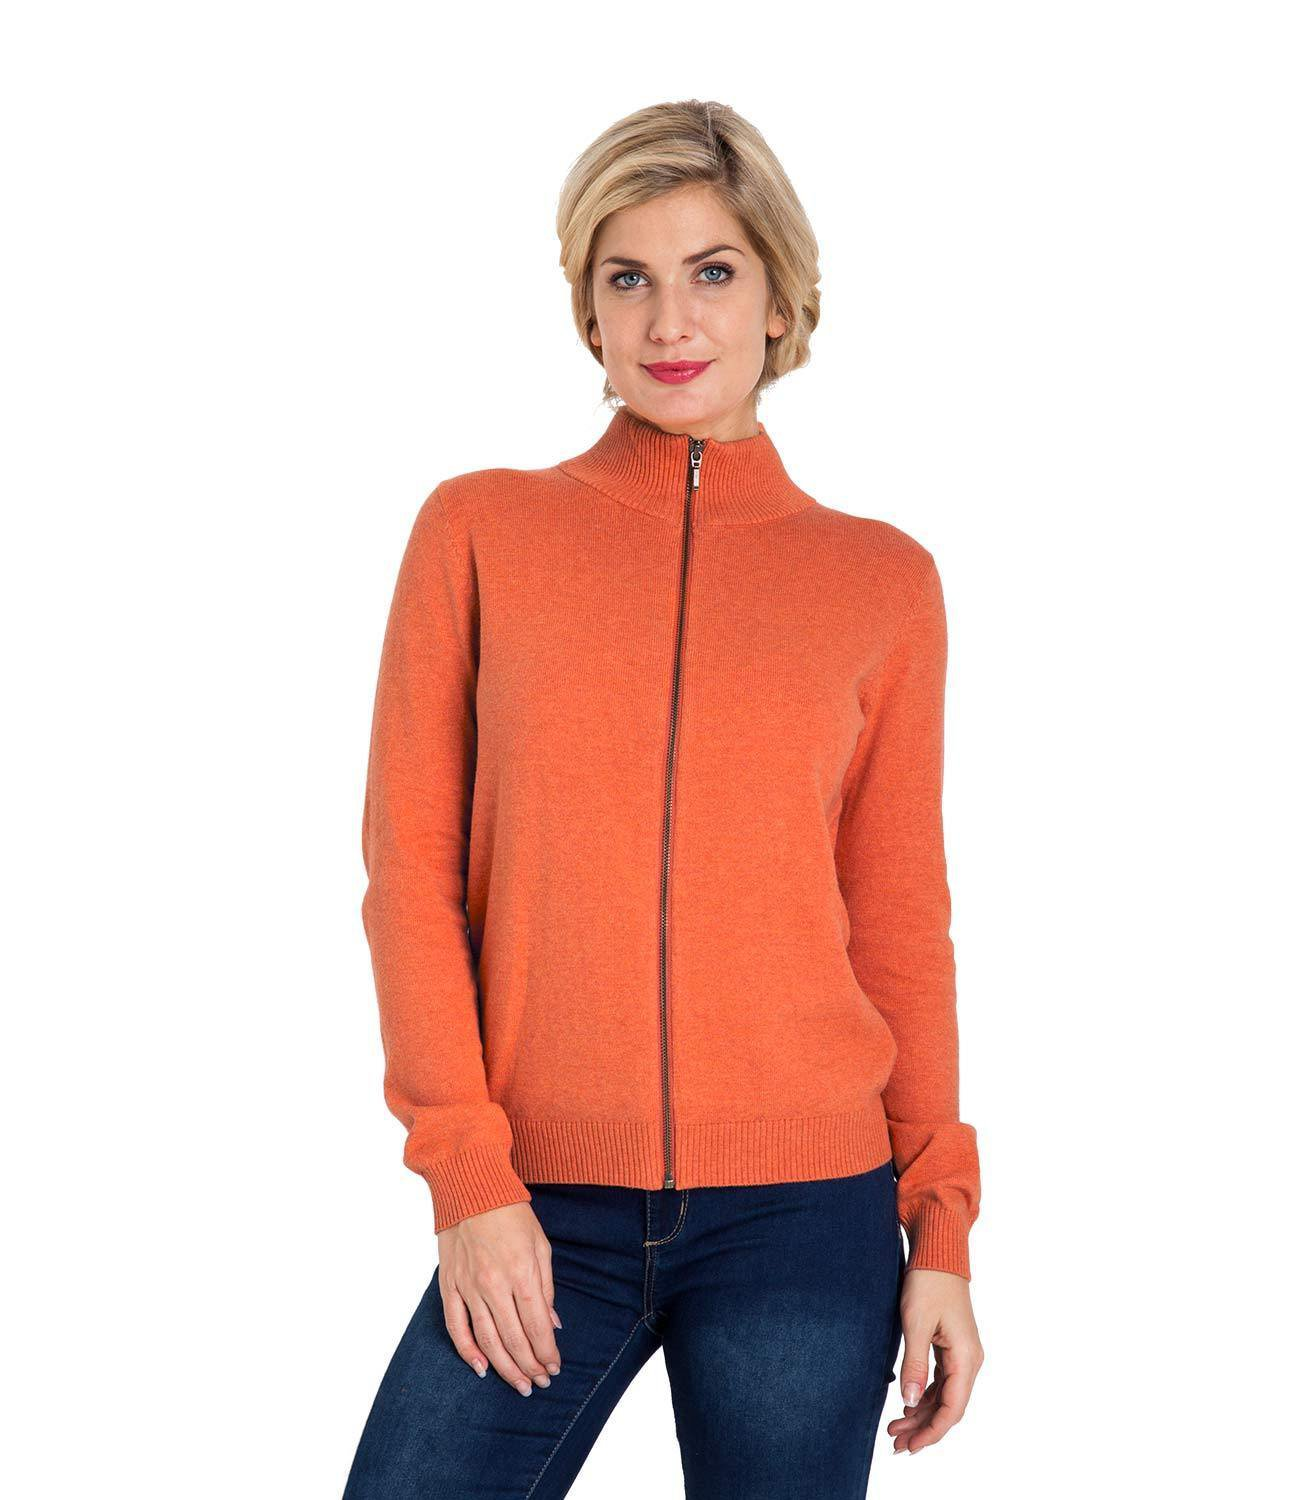 WoolOvers Womens Cashmere and Cotton Zip Through Cardigan Jumper Sweater